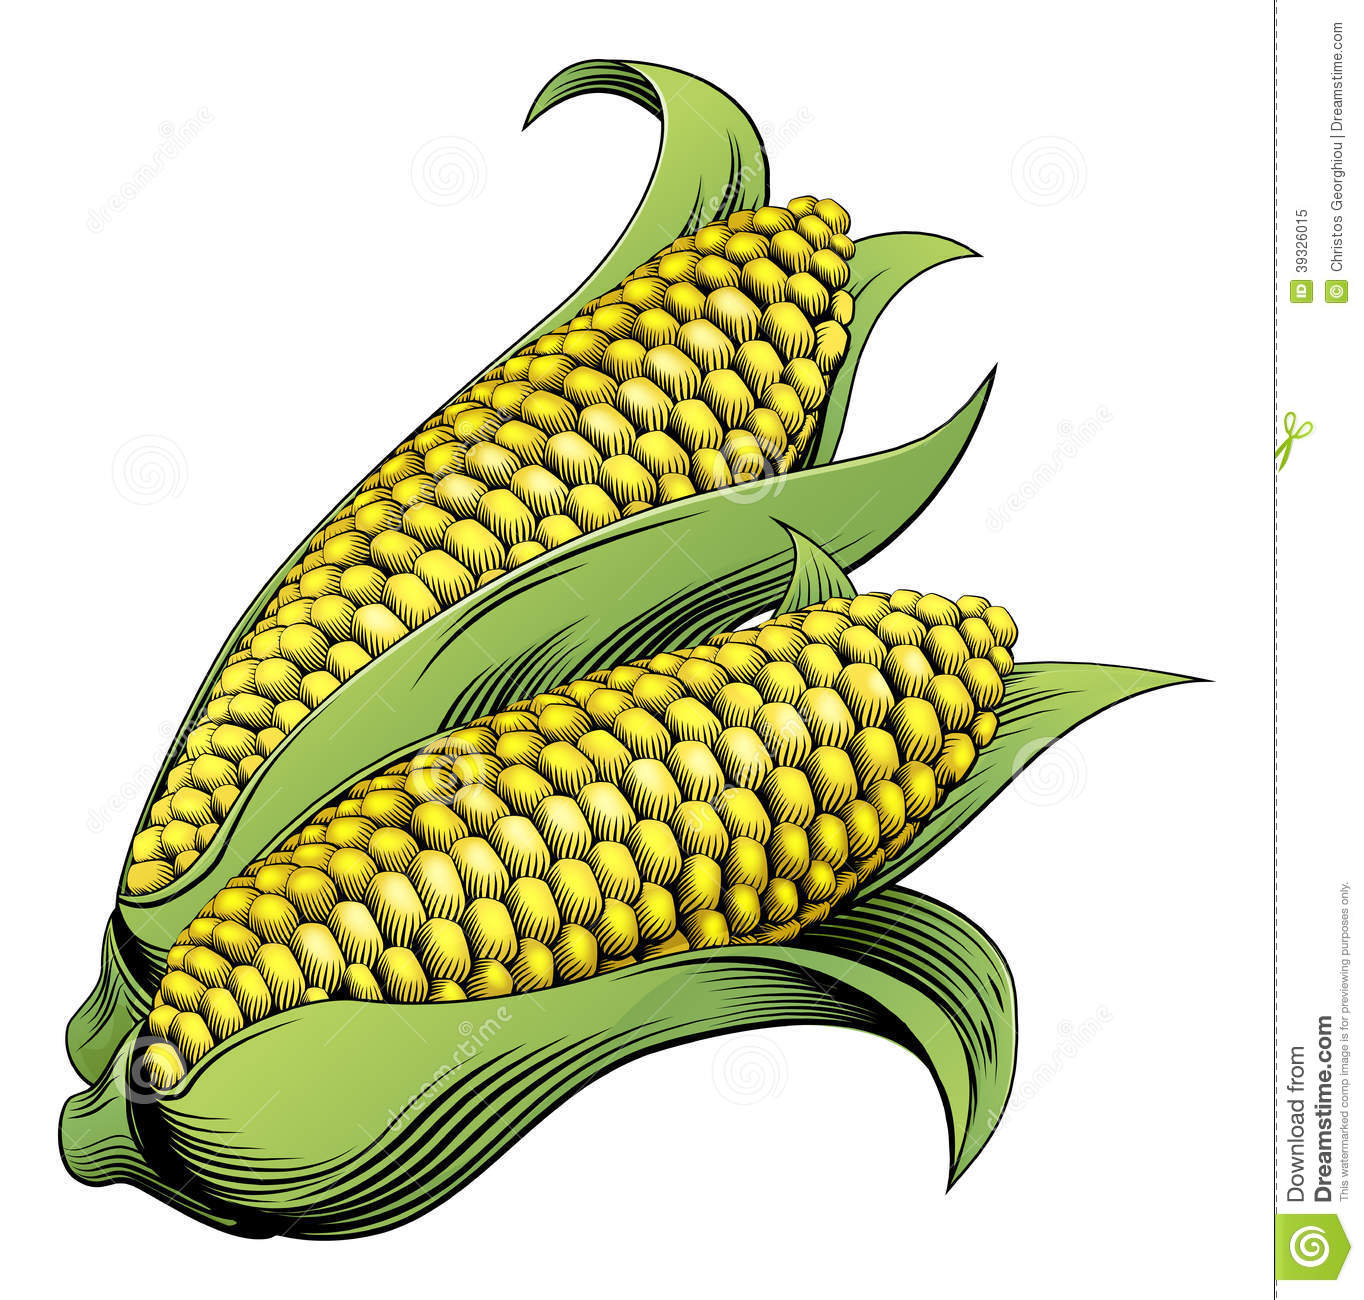 hight resolution of corn woodcut stock illustrations 105 corn woodcut stock illustrations vectors clipart dreamstime